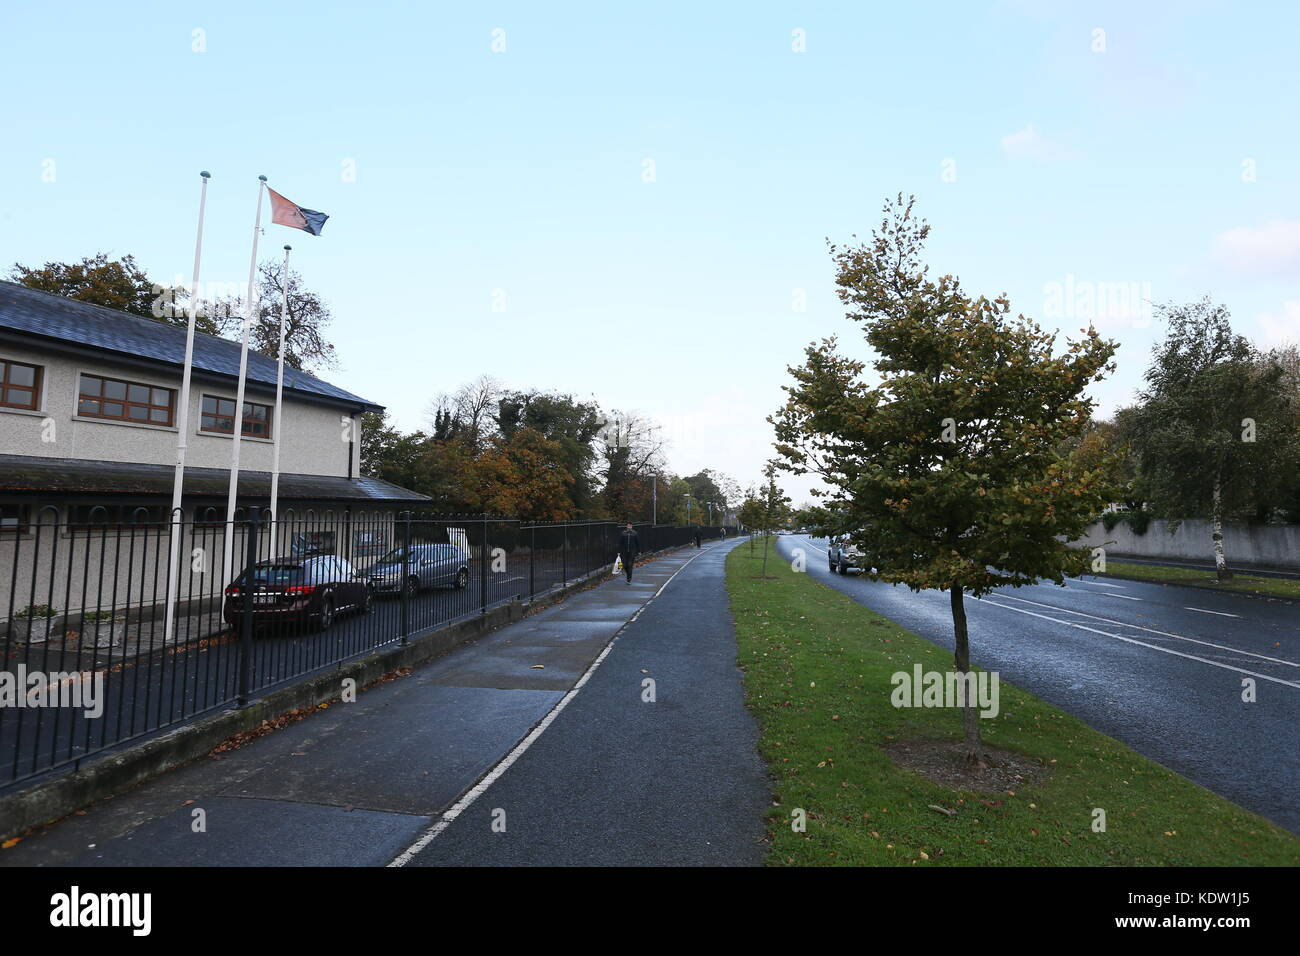 Dublin, Ireland. 16th Oct, 2017. Quiet streets in South Dublin during the build up to Ophelia. Image from Dublin, - Stock Image